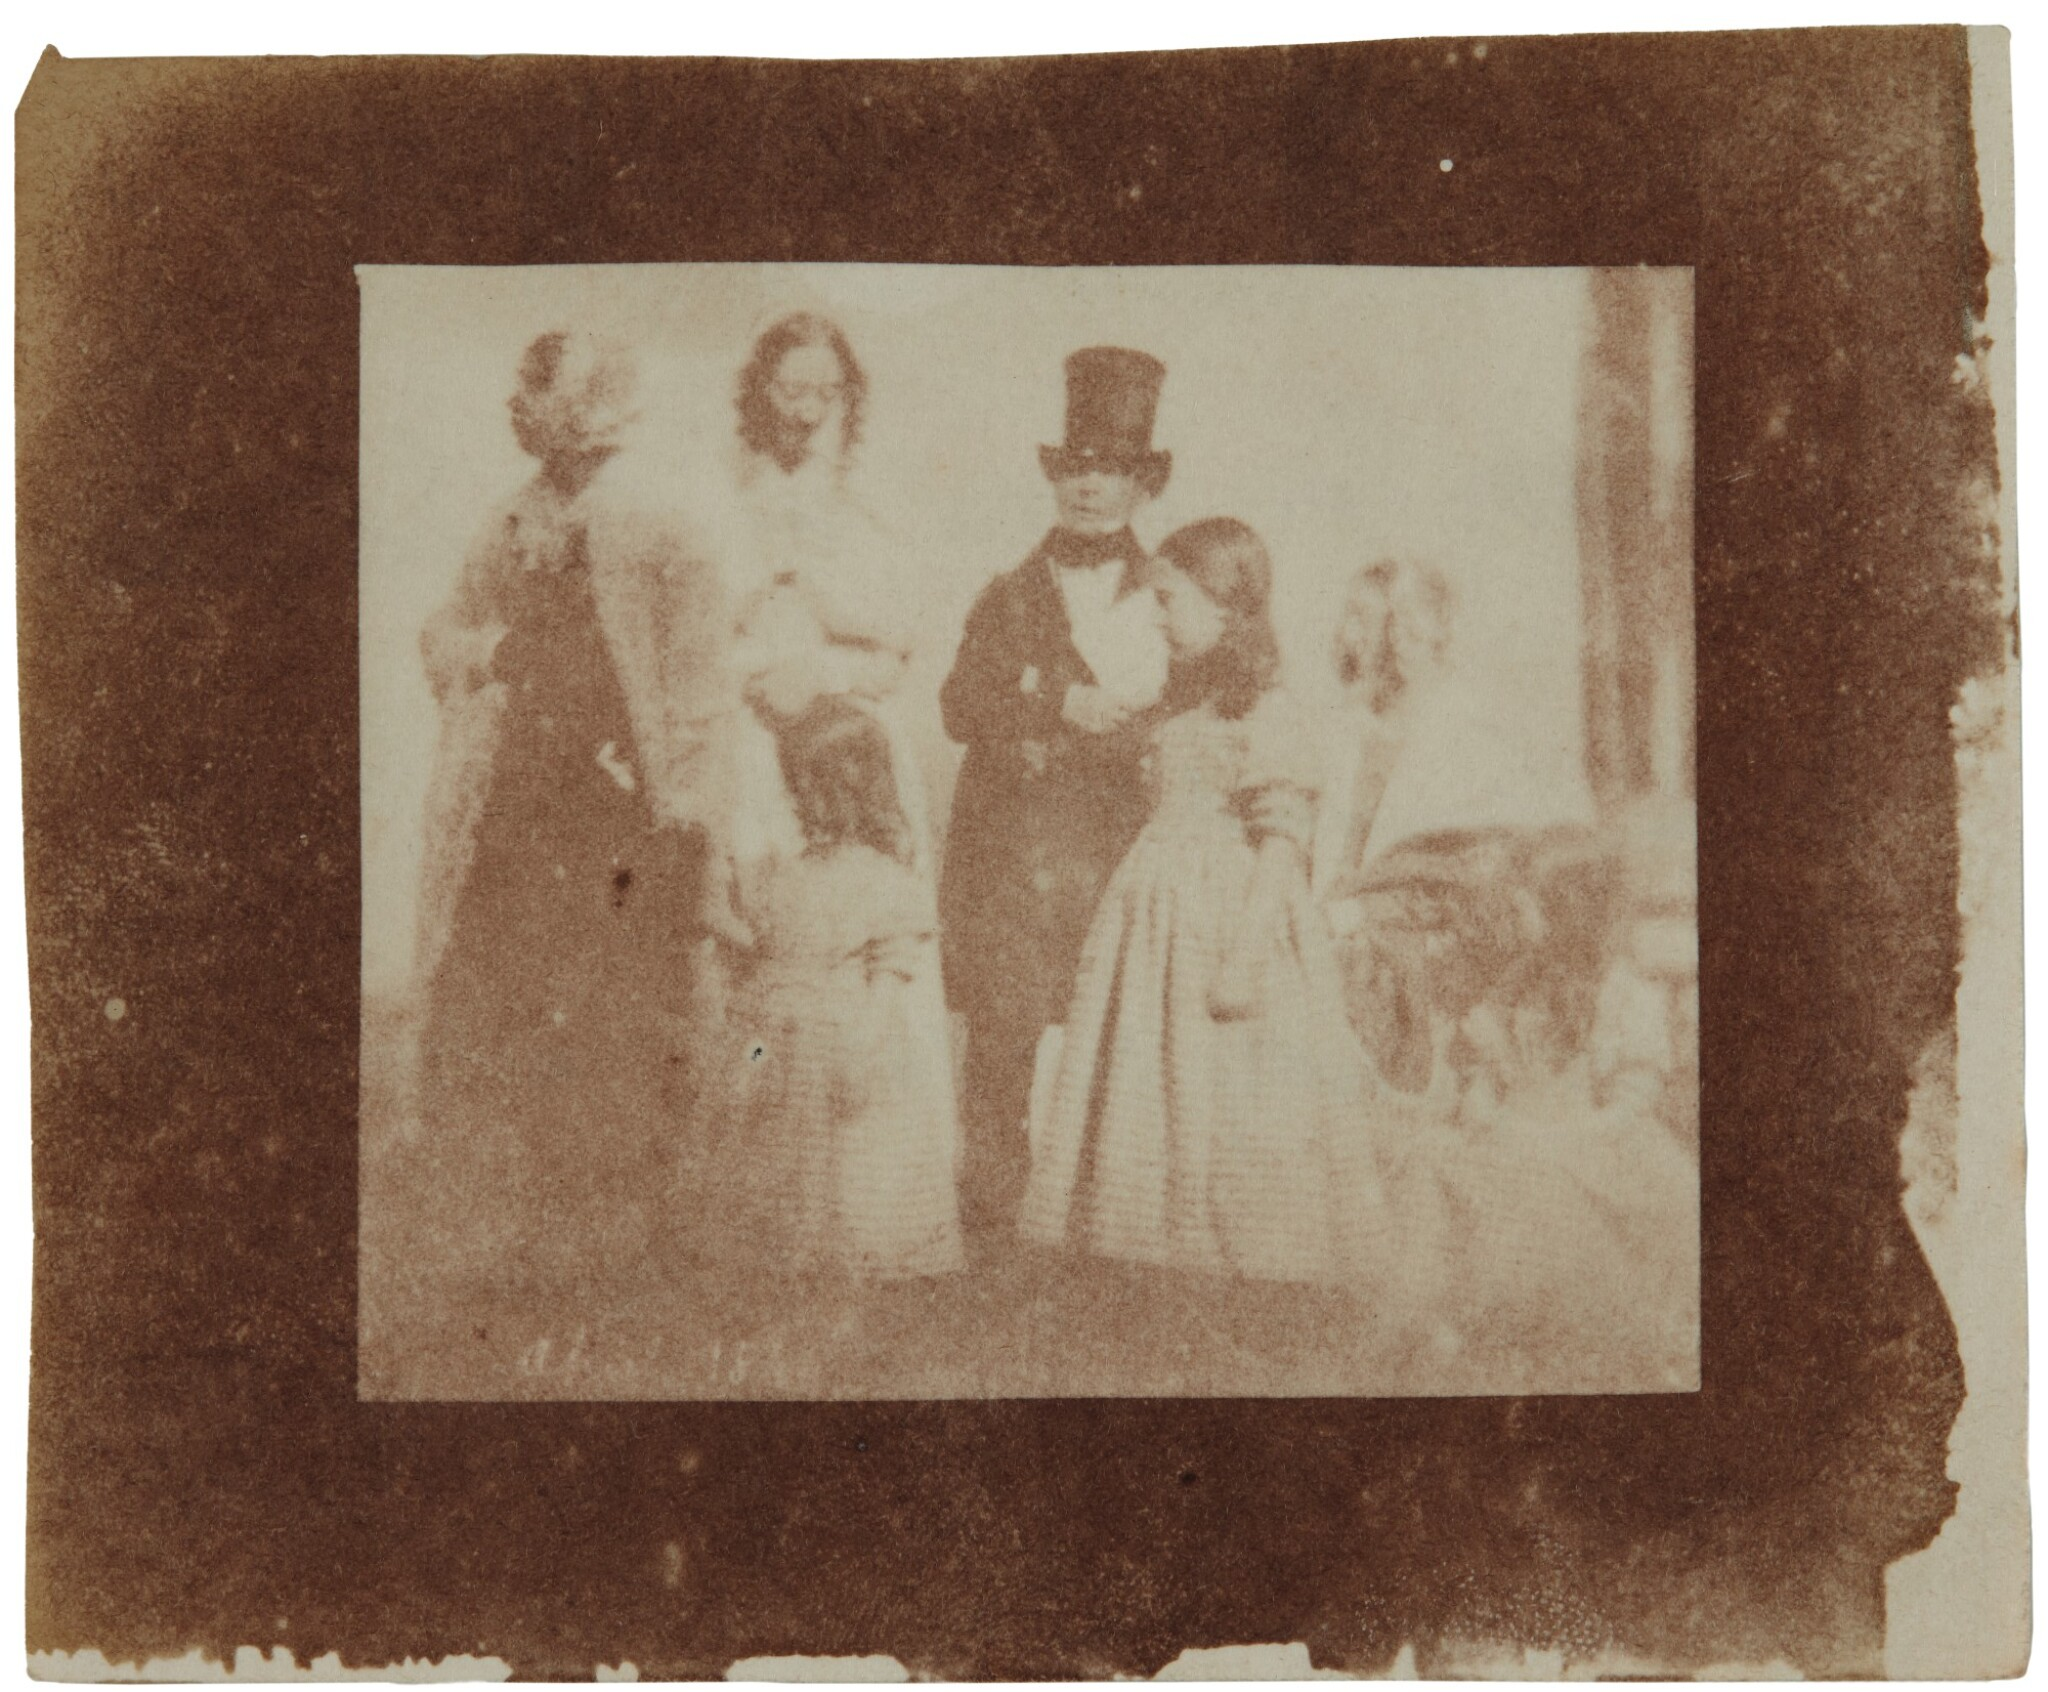 View full screen - View 1 of Lot 11. William Henry Fox Talbot's Gifts to his Sister: Horatia Gaisford's Collection of Photographs and Ephemera.